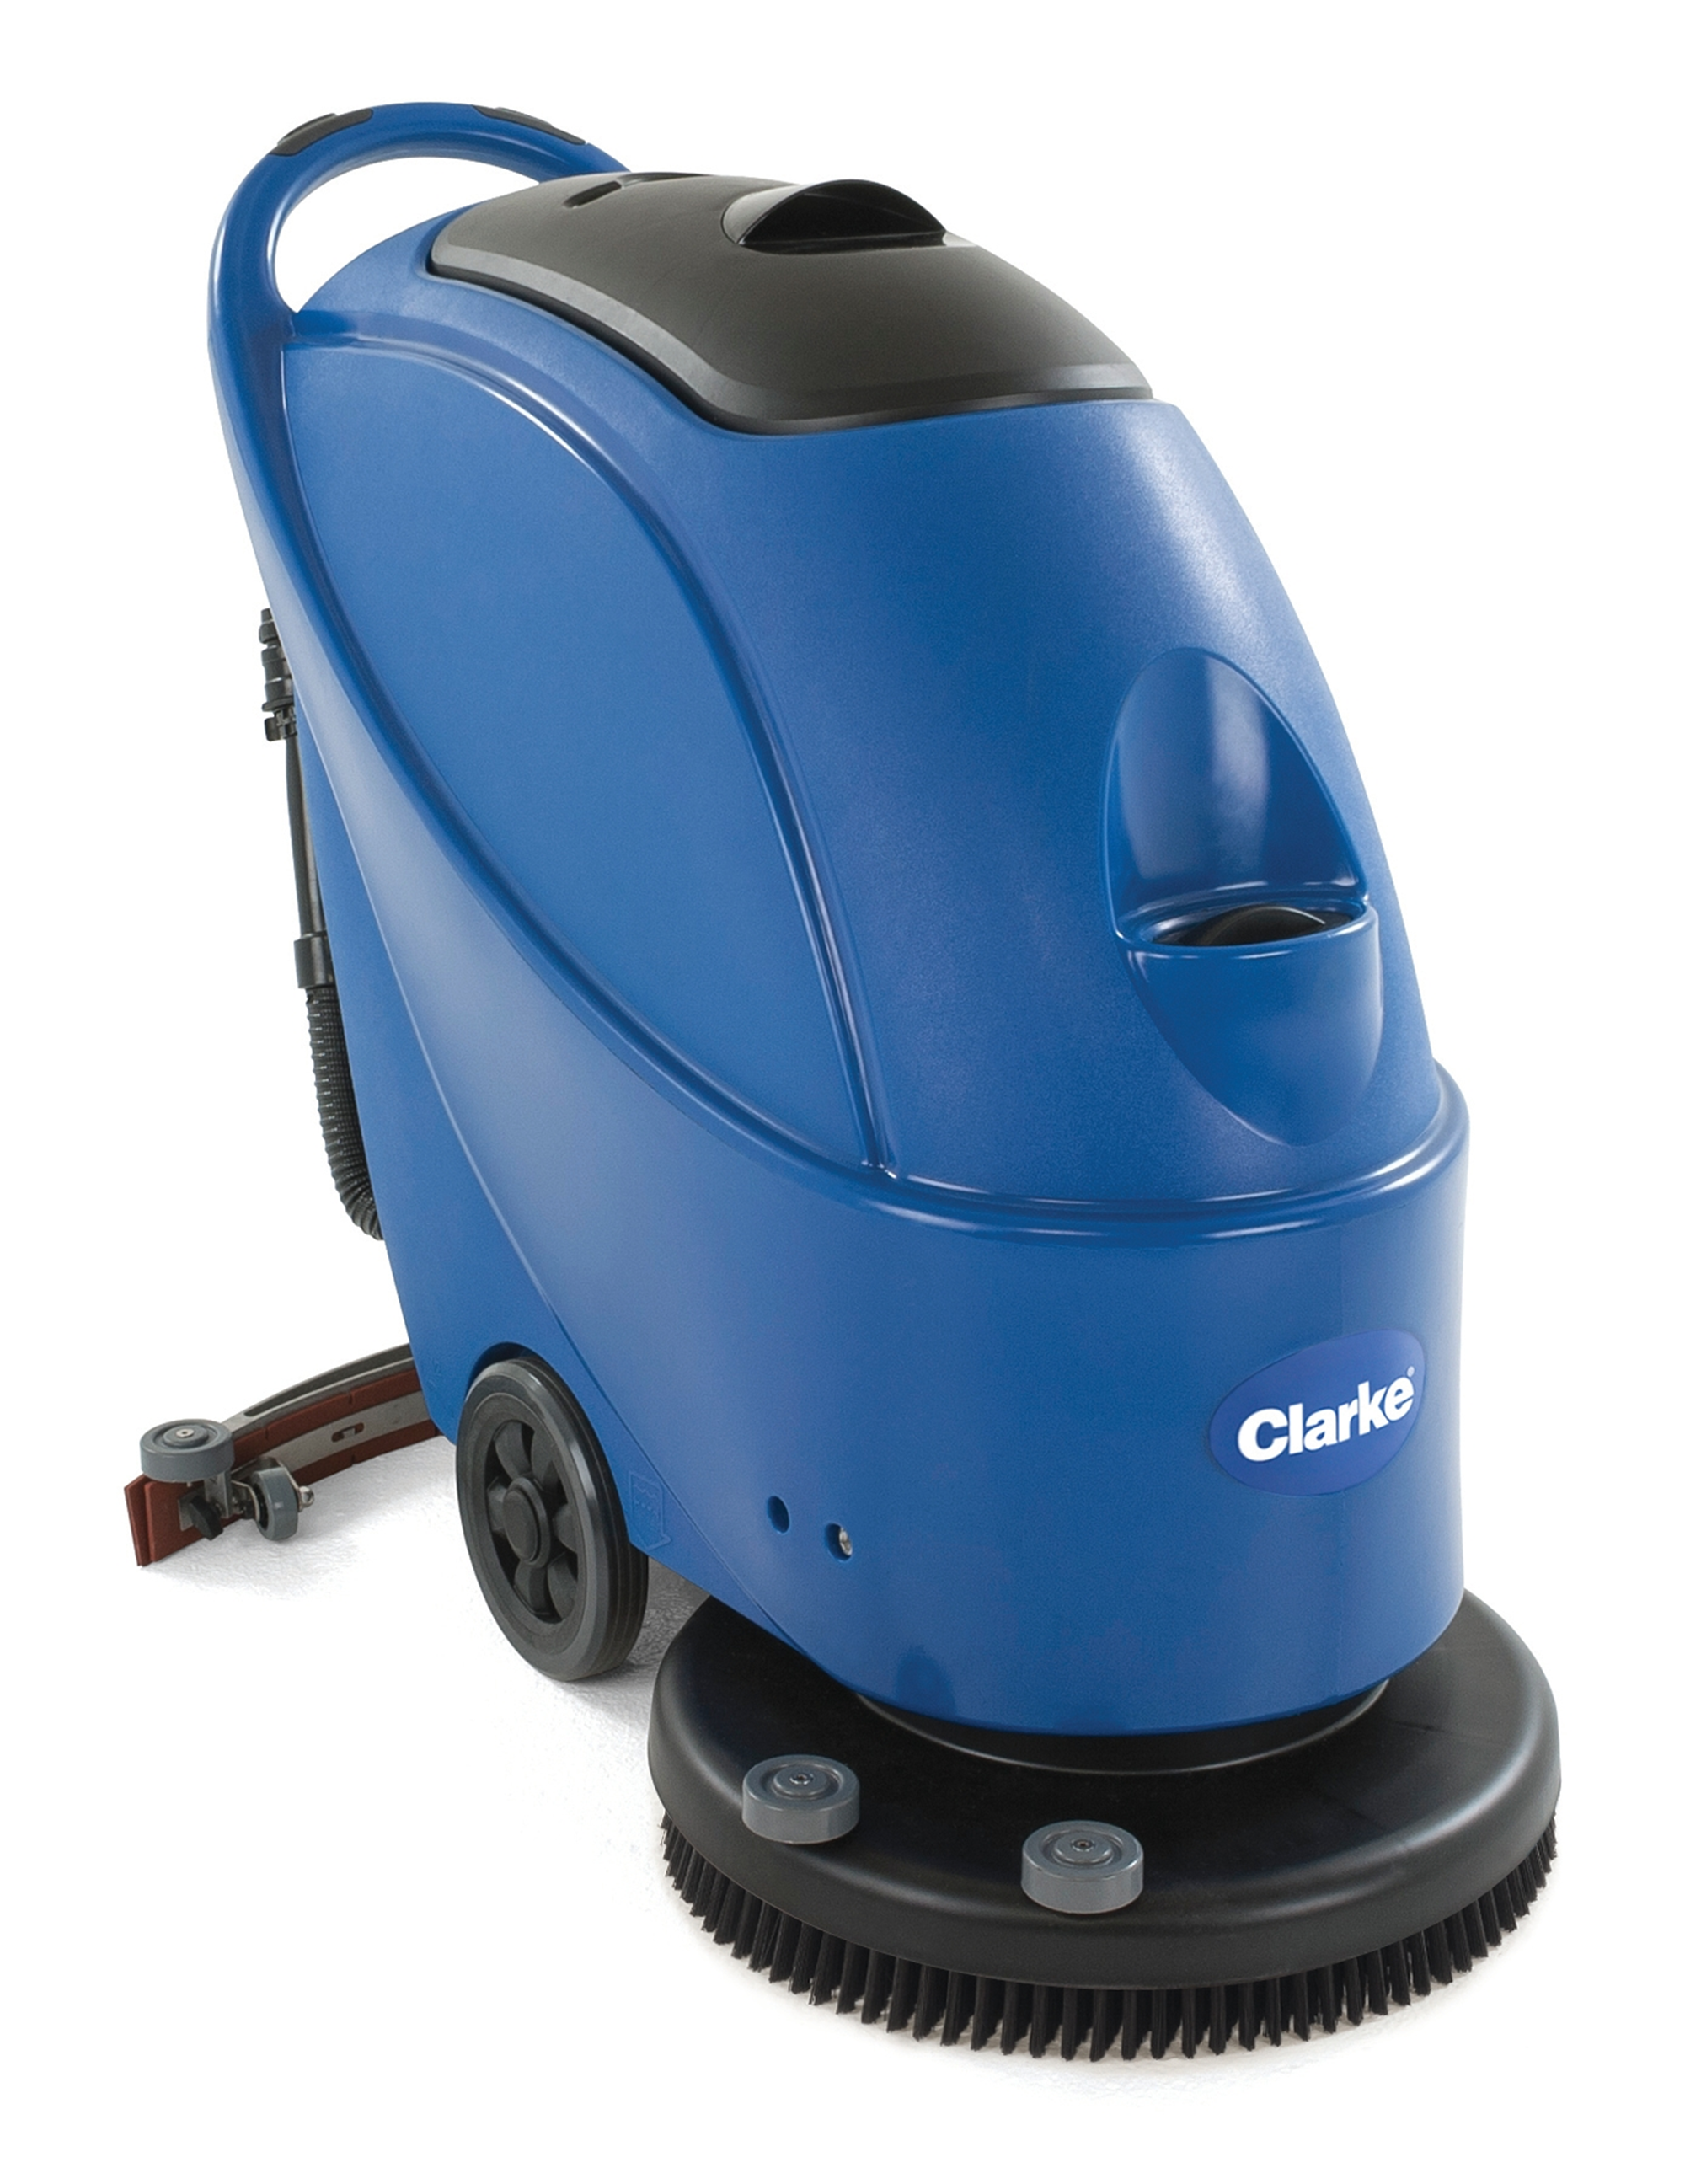 Product, Floor Cleaning, Scrubbers, Walk-behind Scrubbers, Medium, Nilfisk, CA30 20B SCRUBBER PH